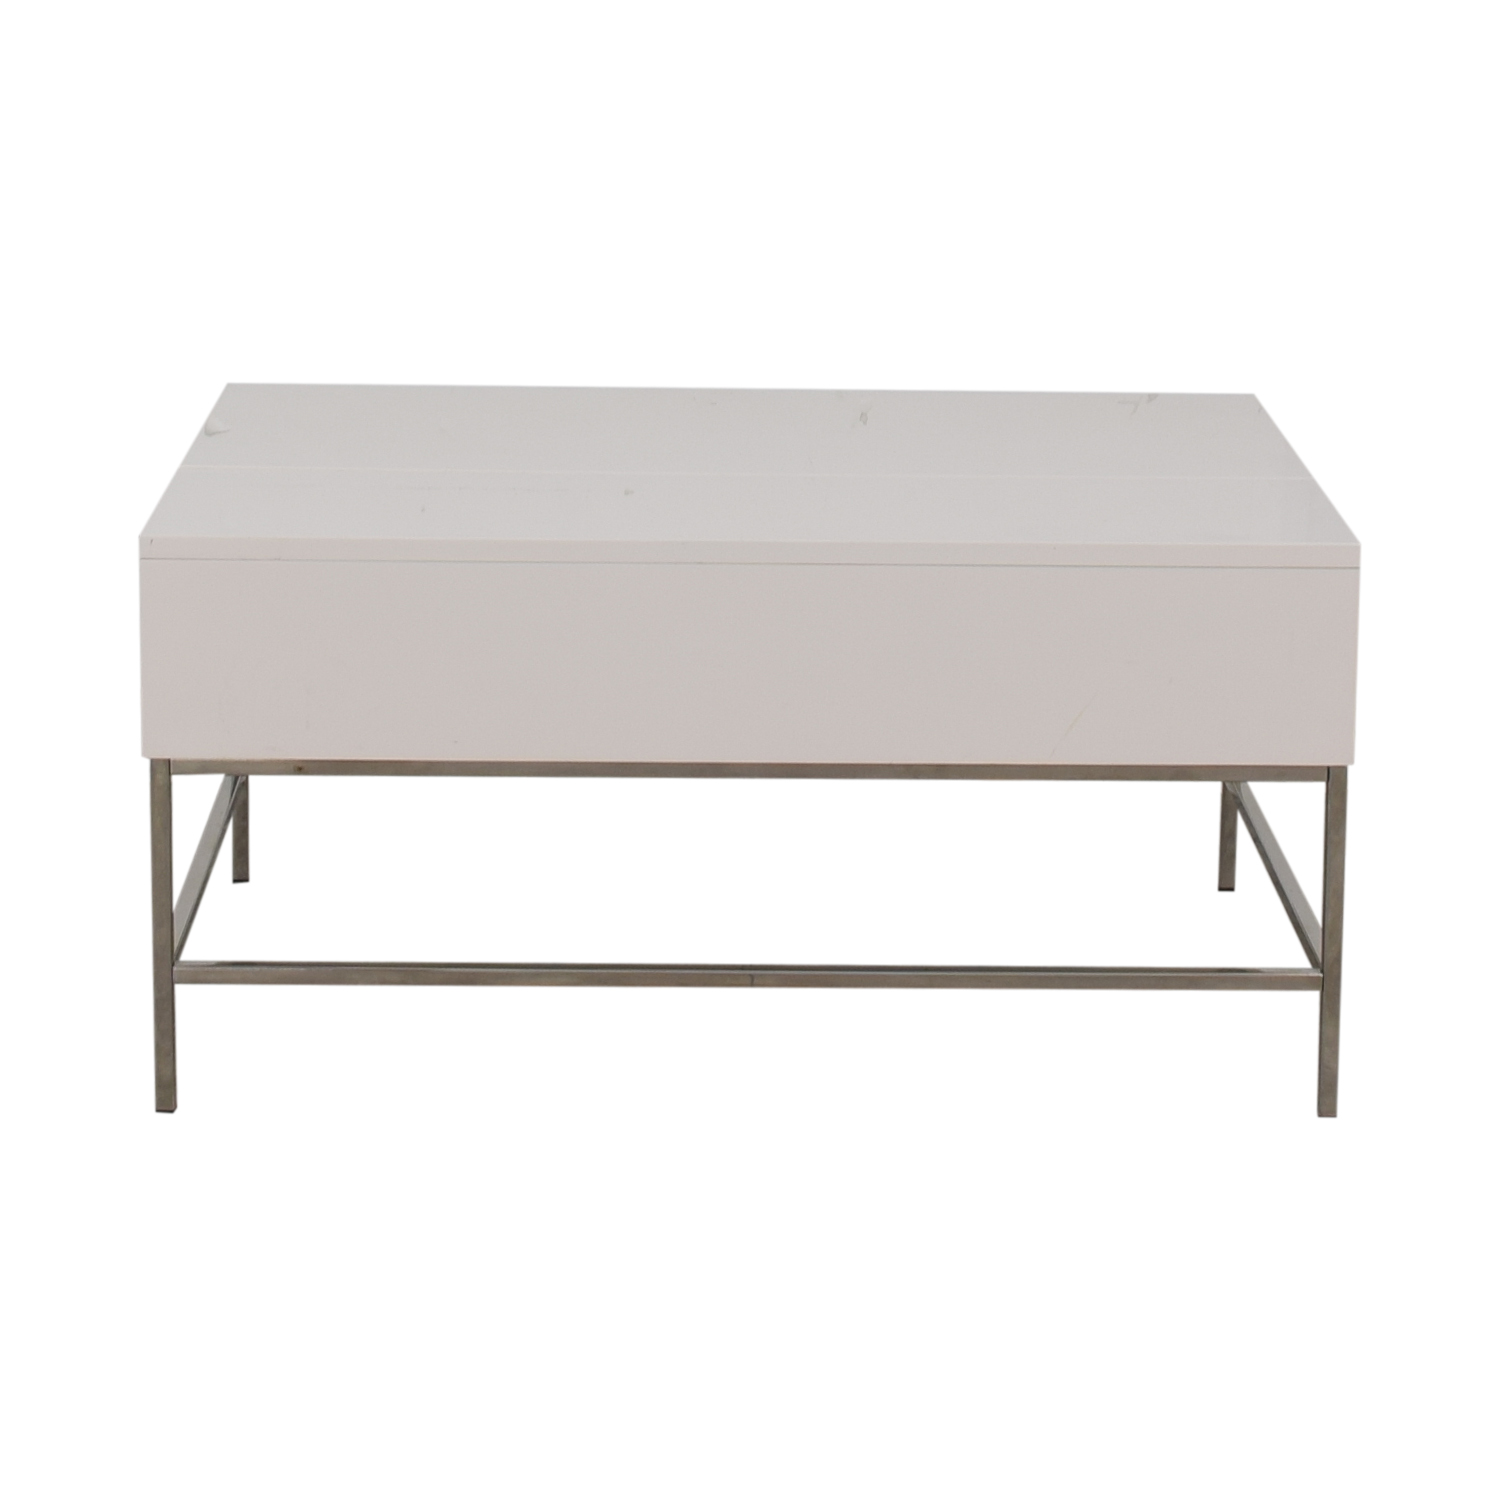 80% OFF - West Elm West Elm Lacquer Storage Pop-Up Coffee Table / Tables